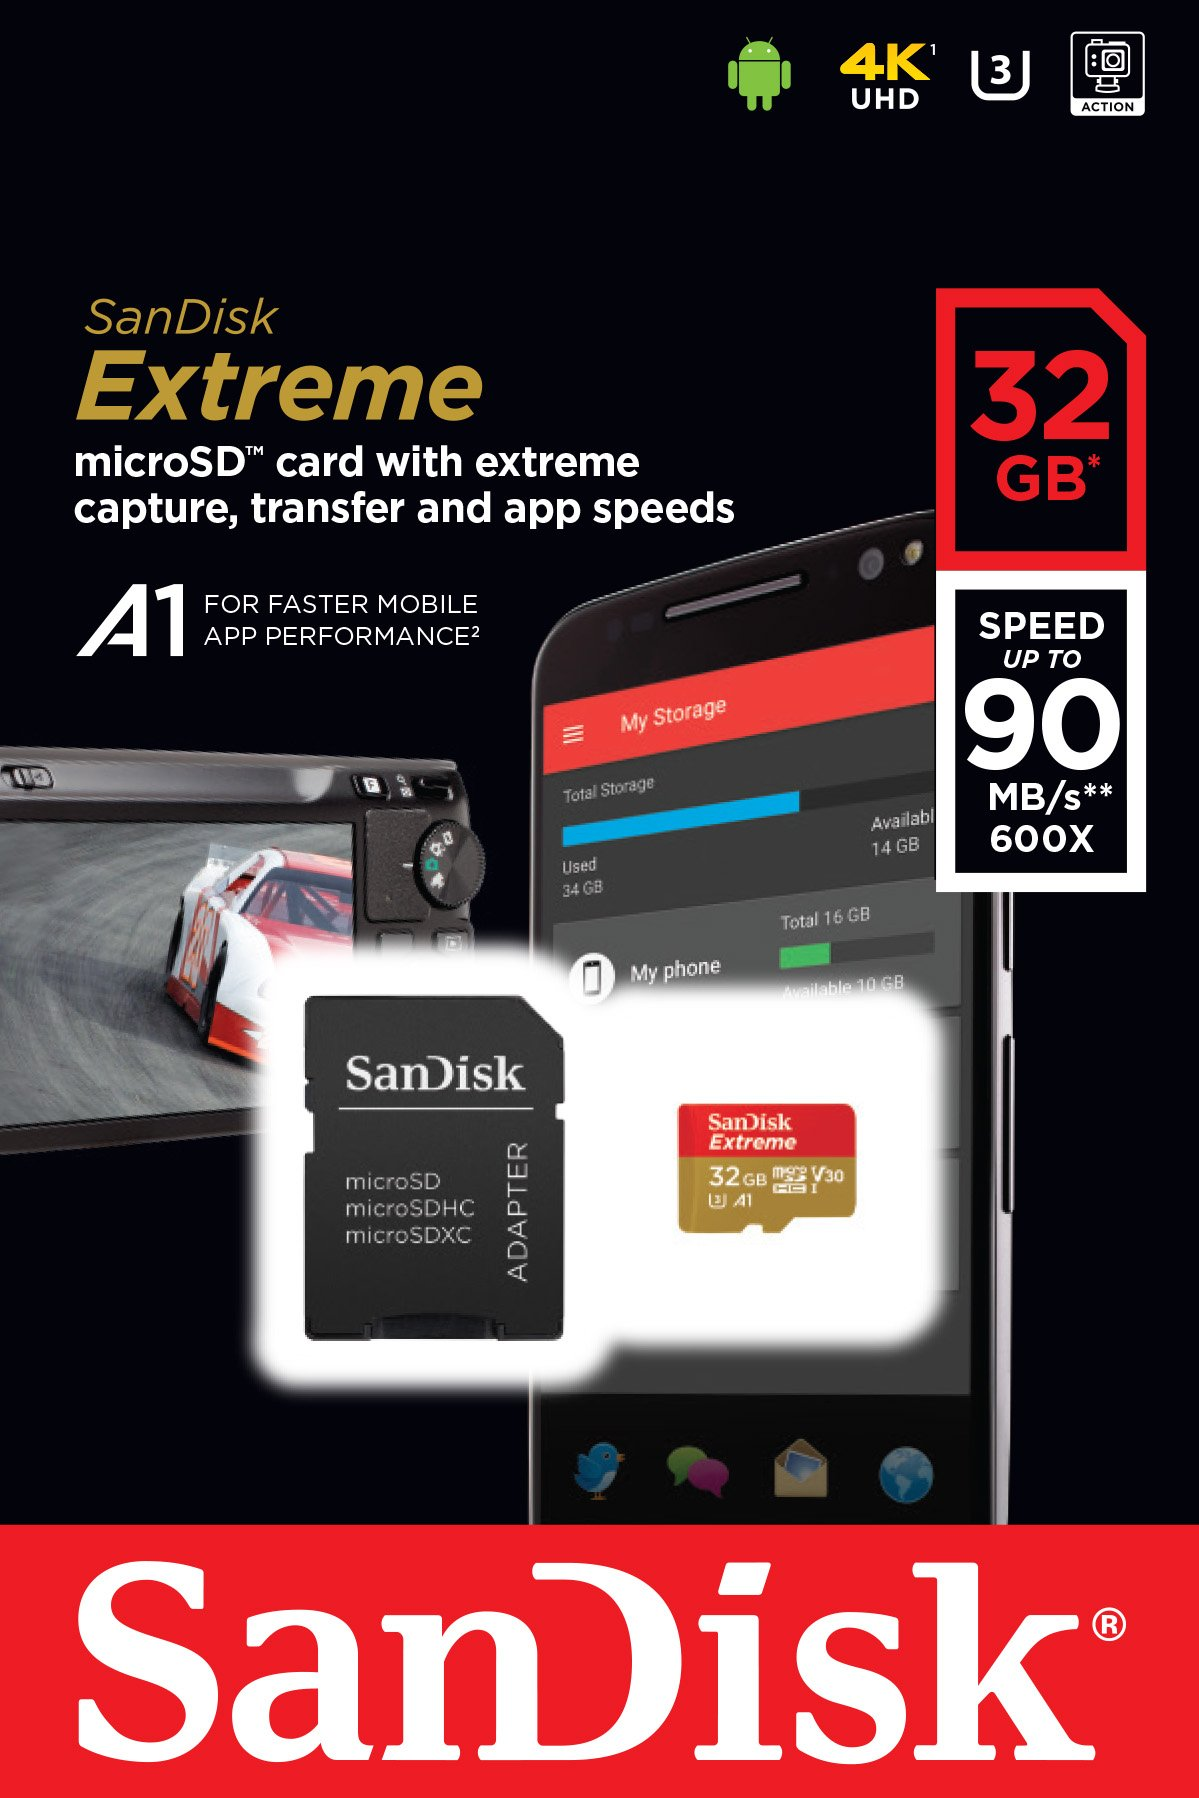 Sandisk extreme microsd uhs-3 card [newest version] 4 ideal for 4k uhd and full hd video2 transfer speeds of up to 100mb/s rescuepro deluxe data recovery software